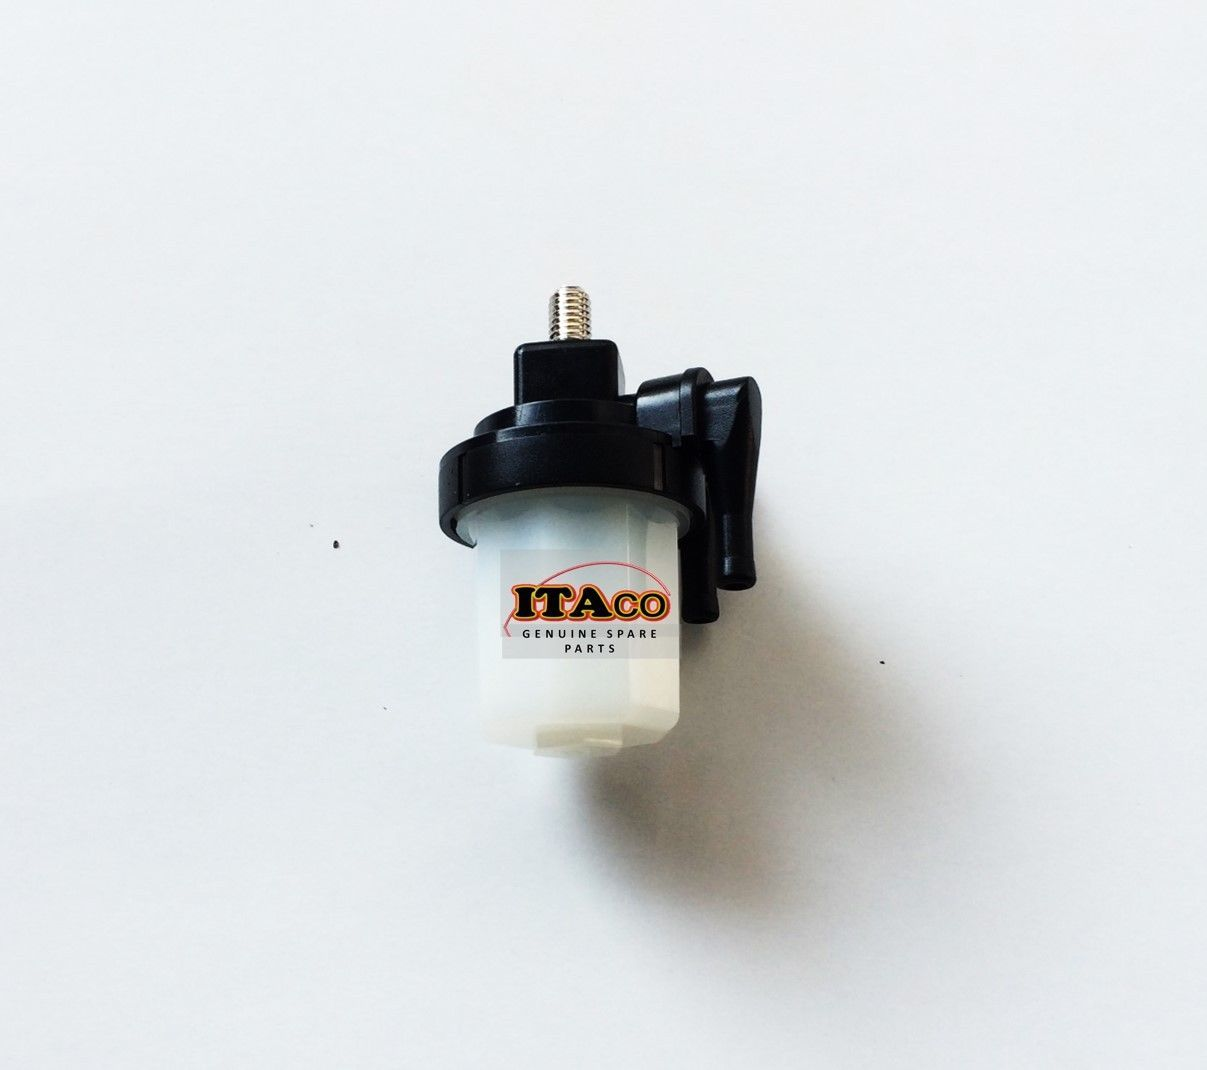 Genuine Tohatsu 25HP 30HP 2-Stroke Outboard Fuel Filter Assembly 3AD-02230-0